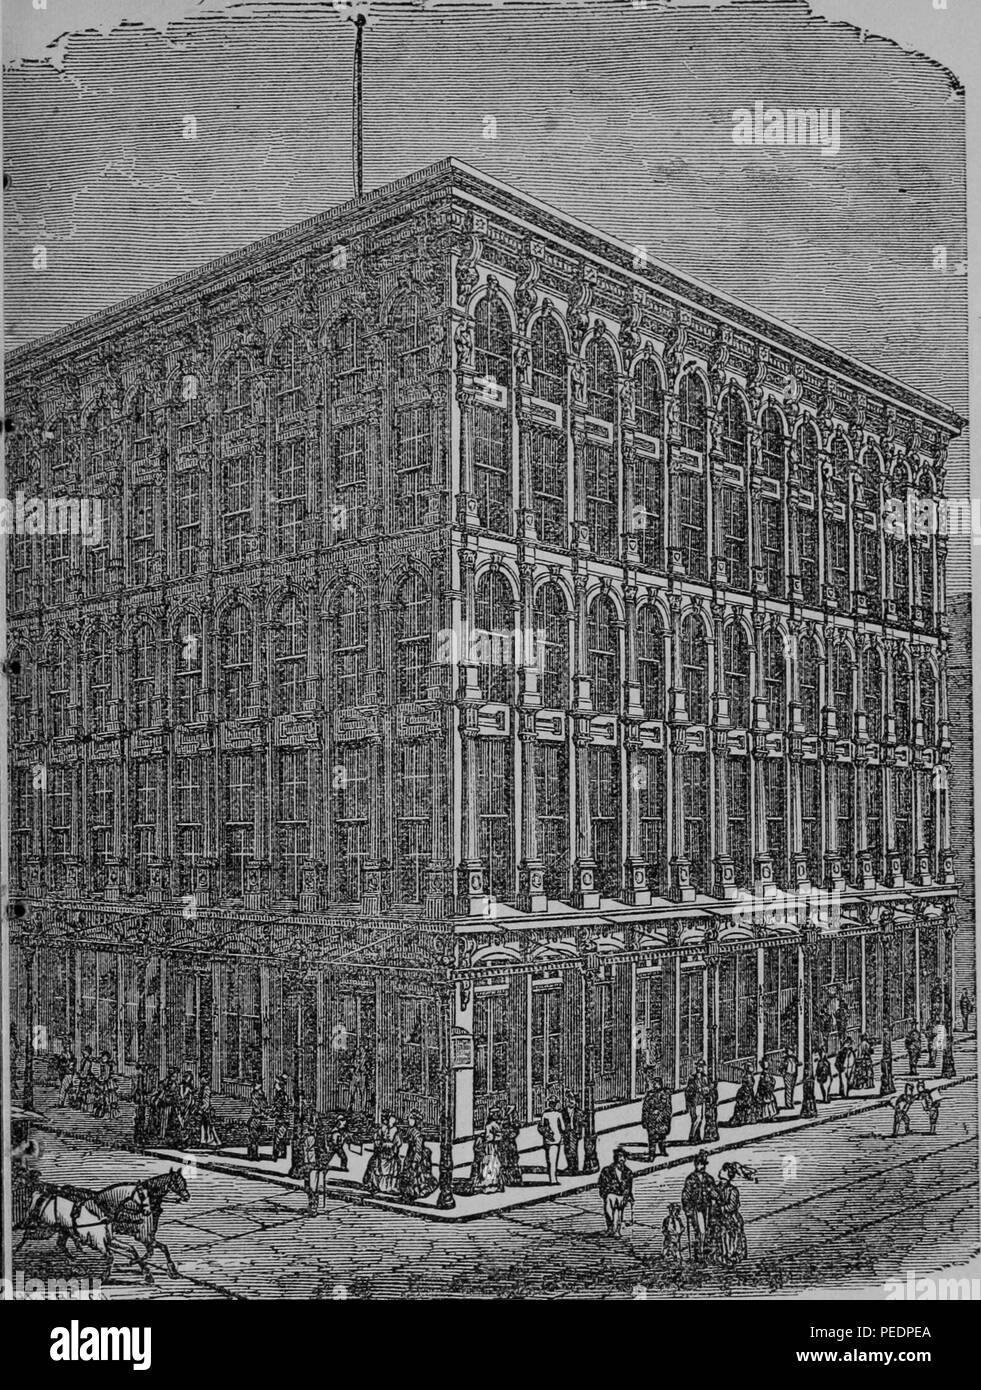 Black and white print depicting the Sun Iron Building, with people in Victorian dress on the sidewalk in the foreground, built in the Classical Revival style with tall arches and engaged columns, the building housed the offices of the Daily and Weekly Sun Newspaper, located on the SE Corner of Baltimore and South Streets, in Baltimore, Maryland, USA, published in John T King's 'Guide to Baltimore and Ohio Railroad', 1874. Courtesy Internet Archive. () - Stock Image